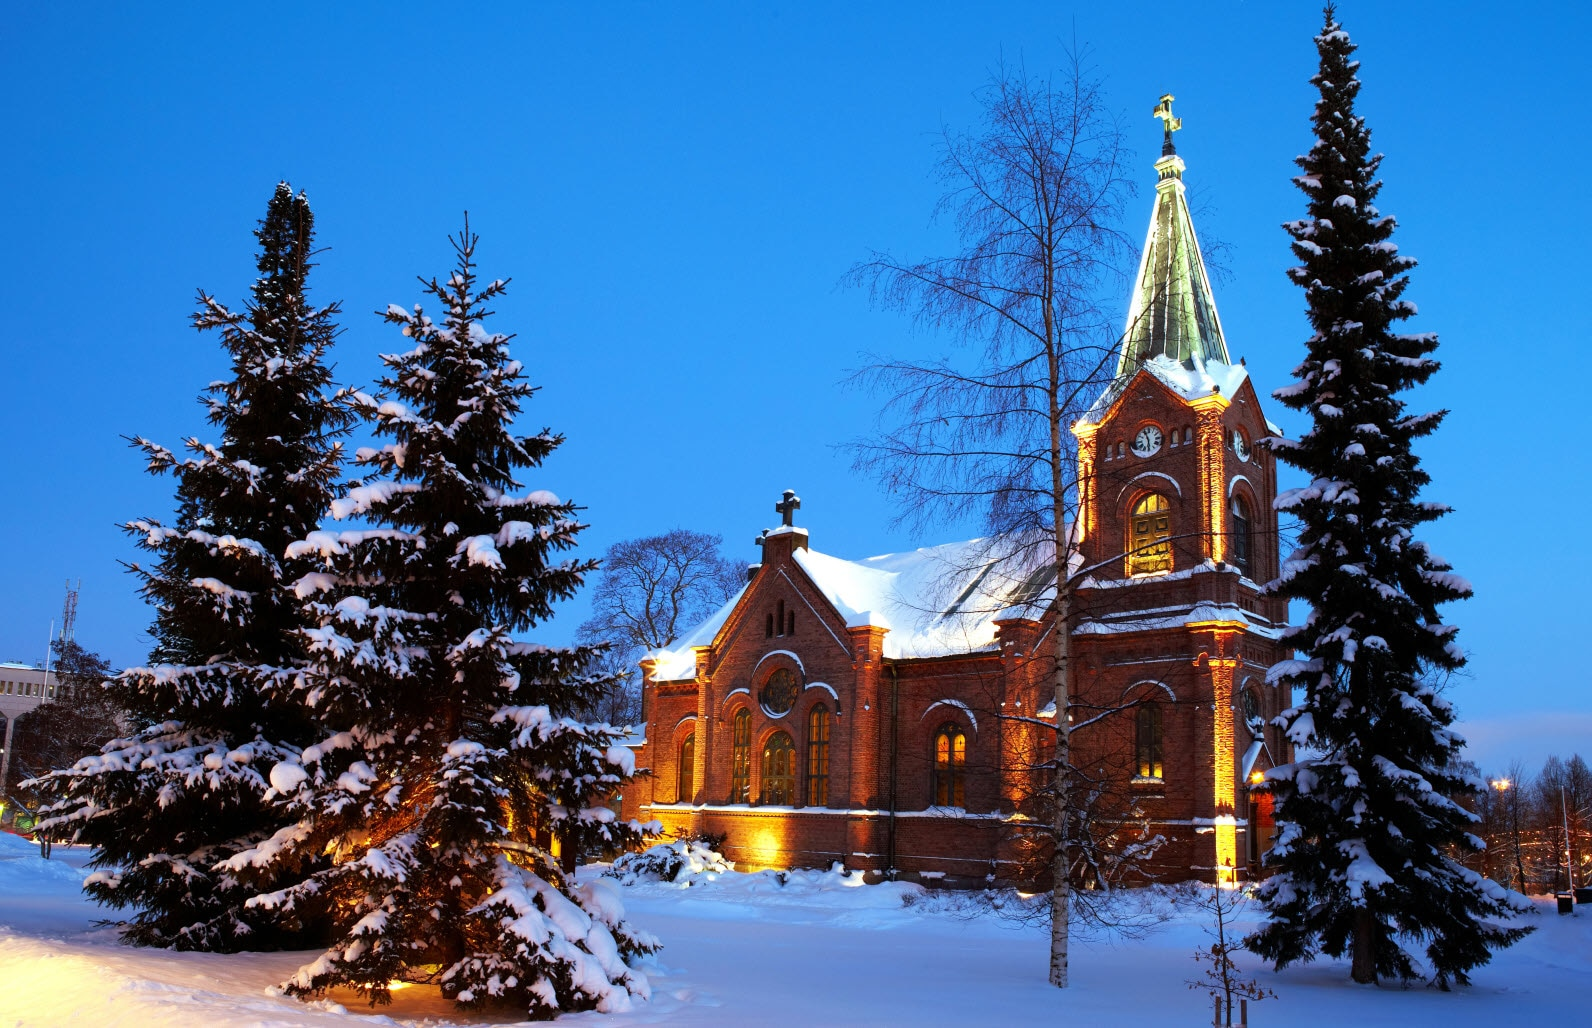 Church-winter-keijo-penttinen.jpg